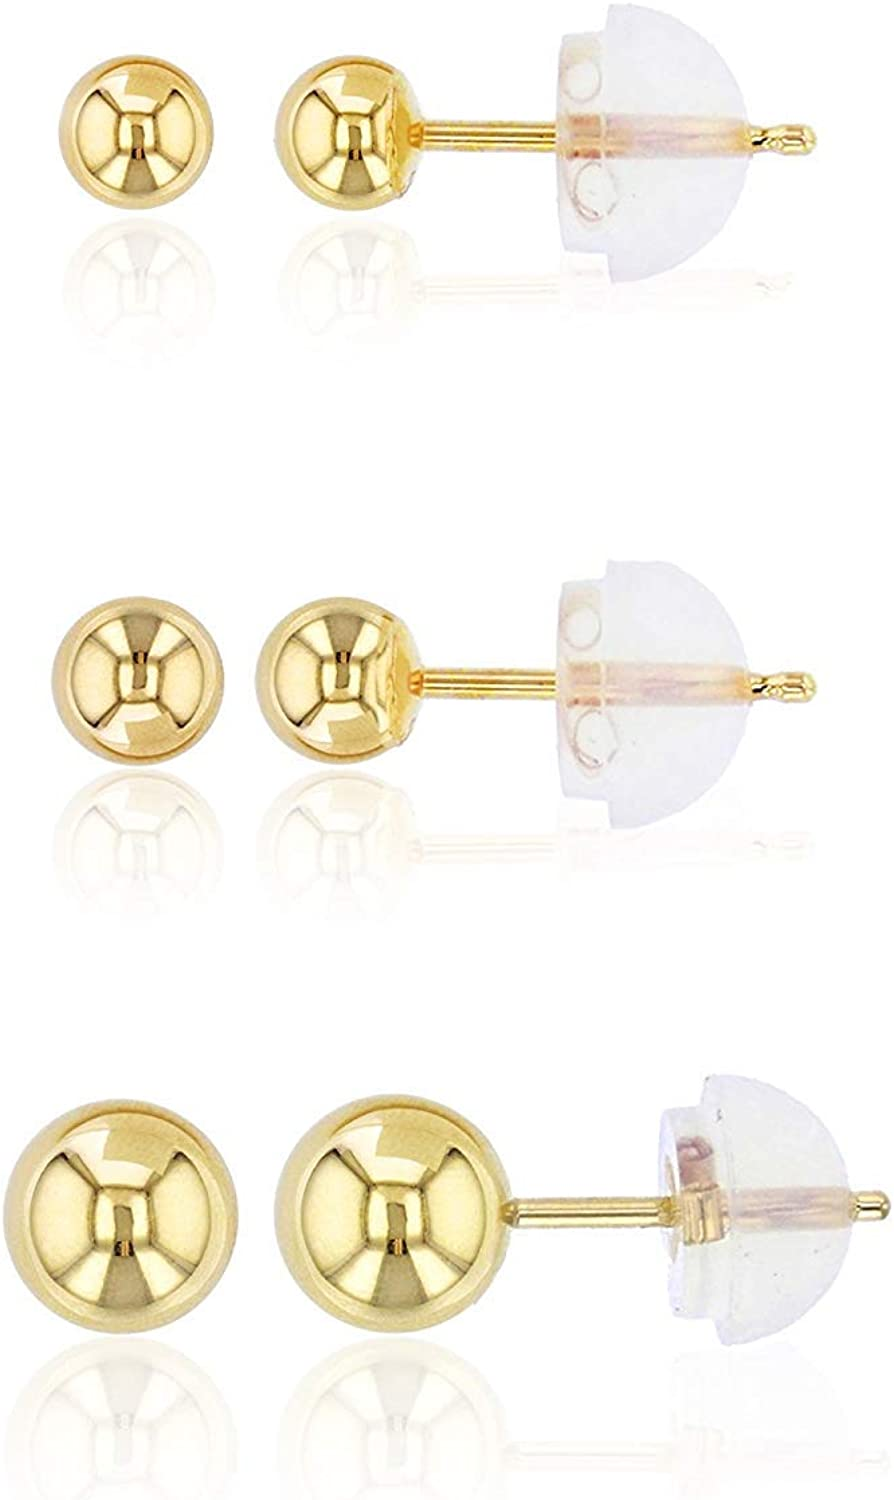 Solid 14K Yellow Under blast sales Gold 3 Pack Set Ball shipfree 5mm Stud 4 Polished Earr